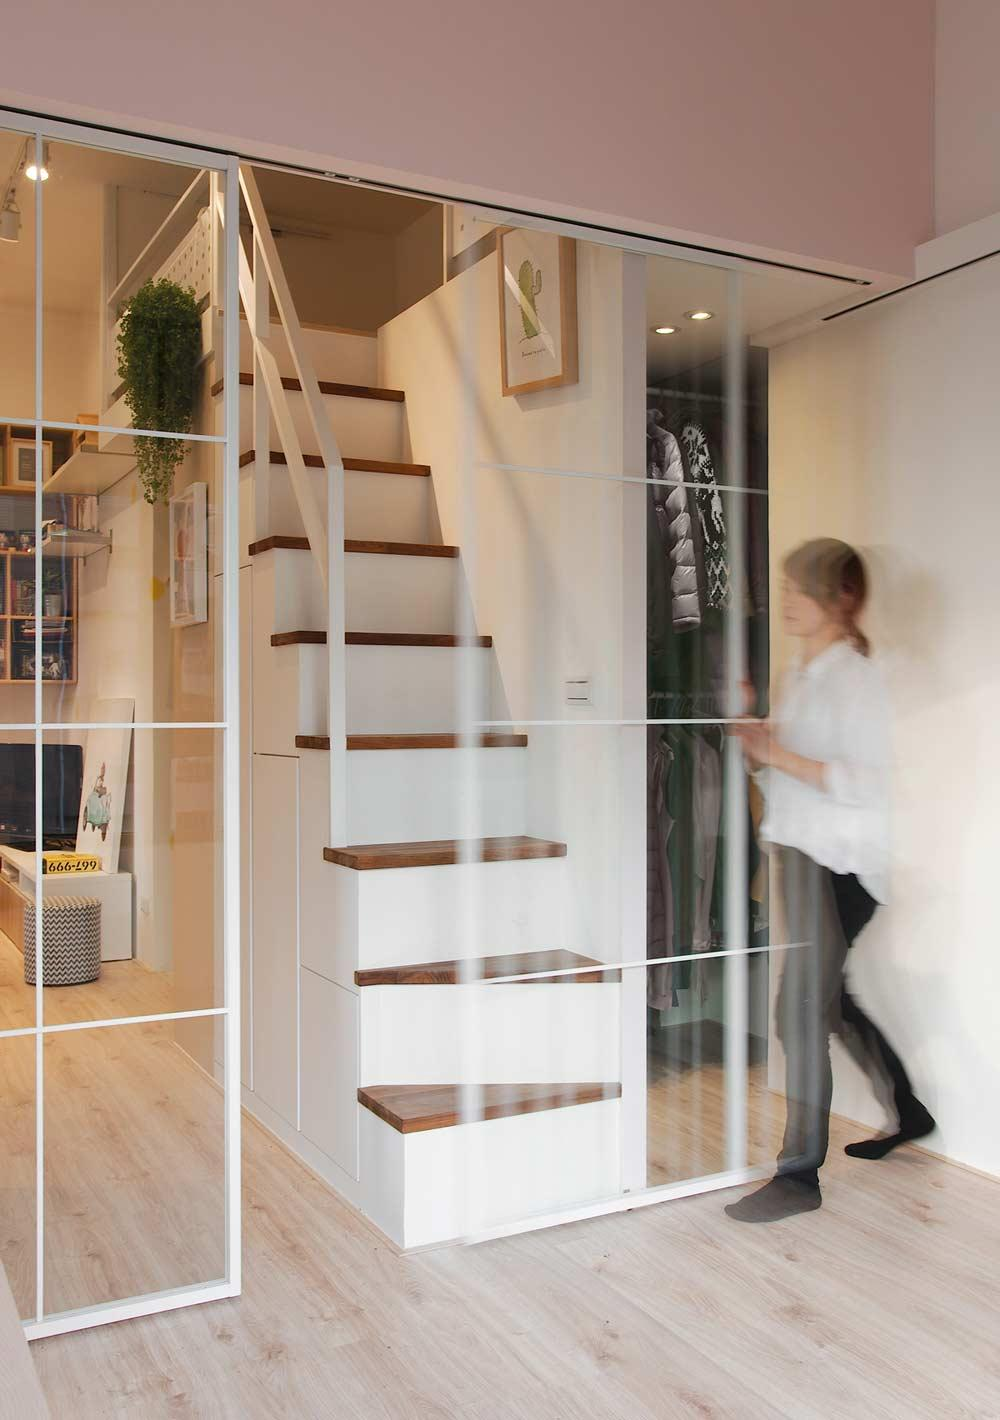 Glass door: 60 ideas and designs to inspire 1